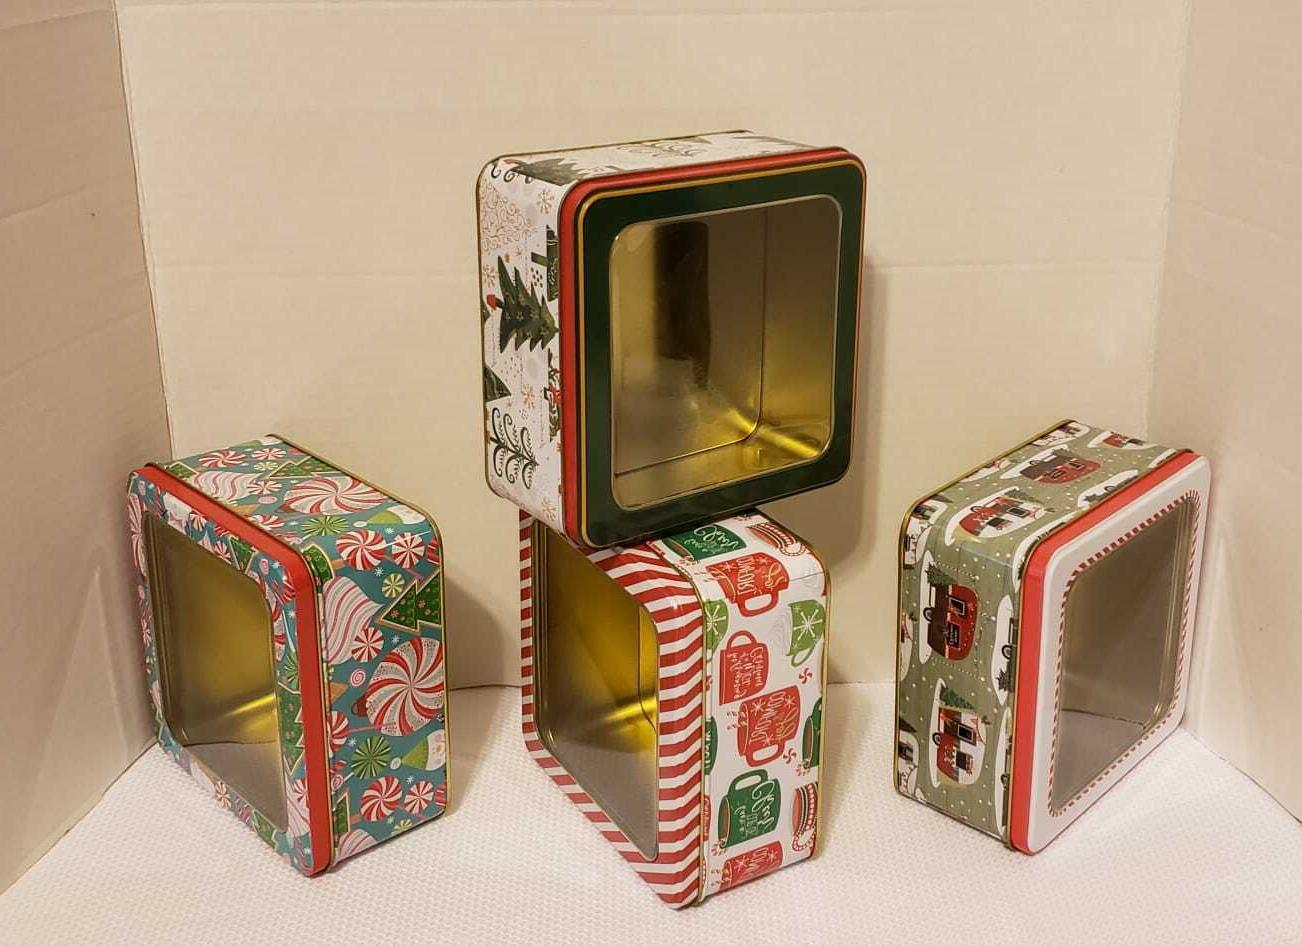 nesting holiday gift boxes with window lids